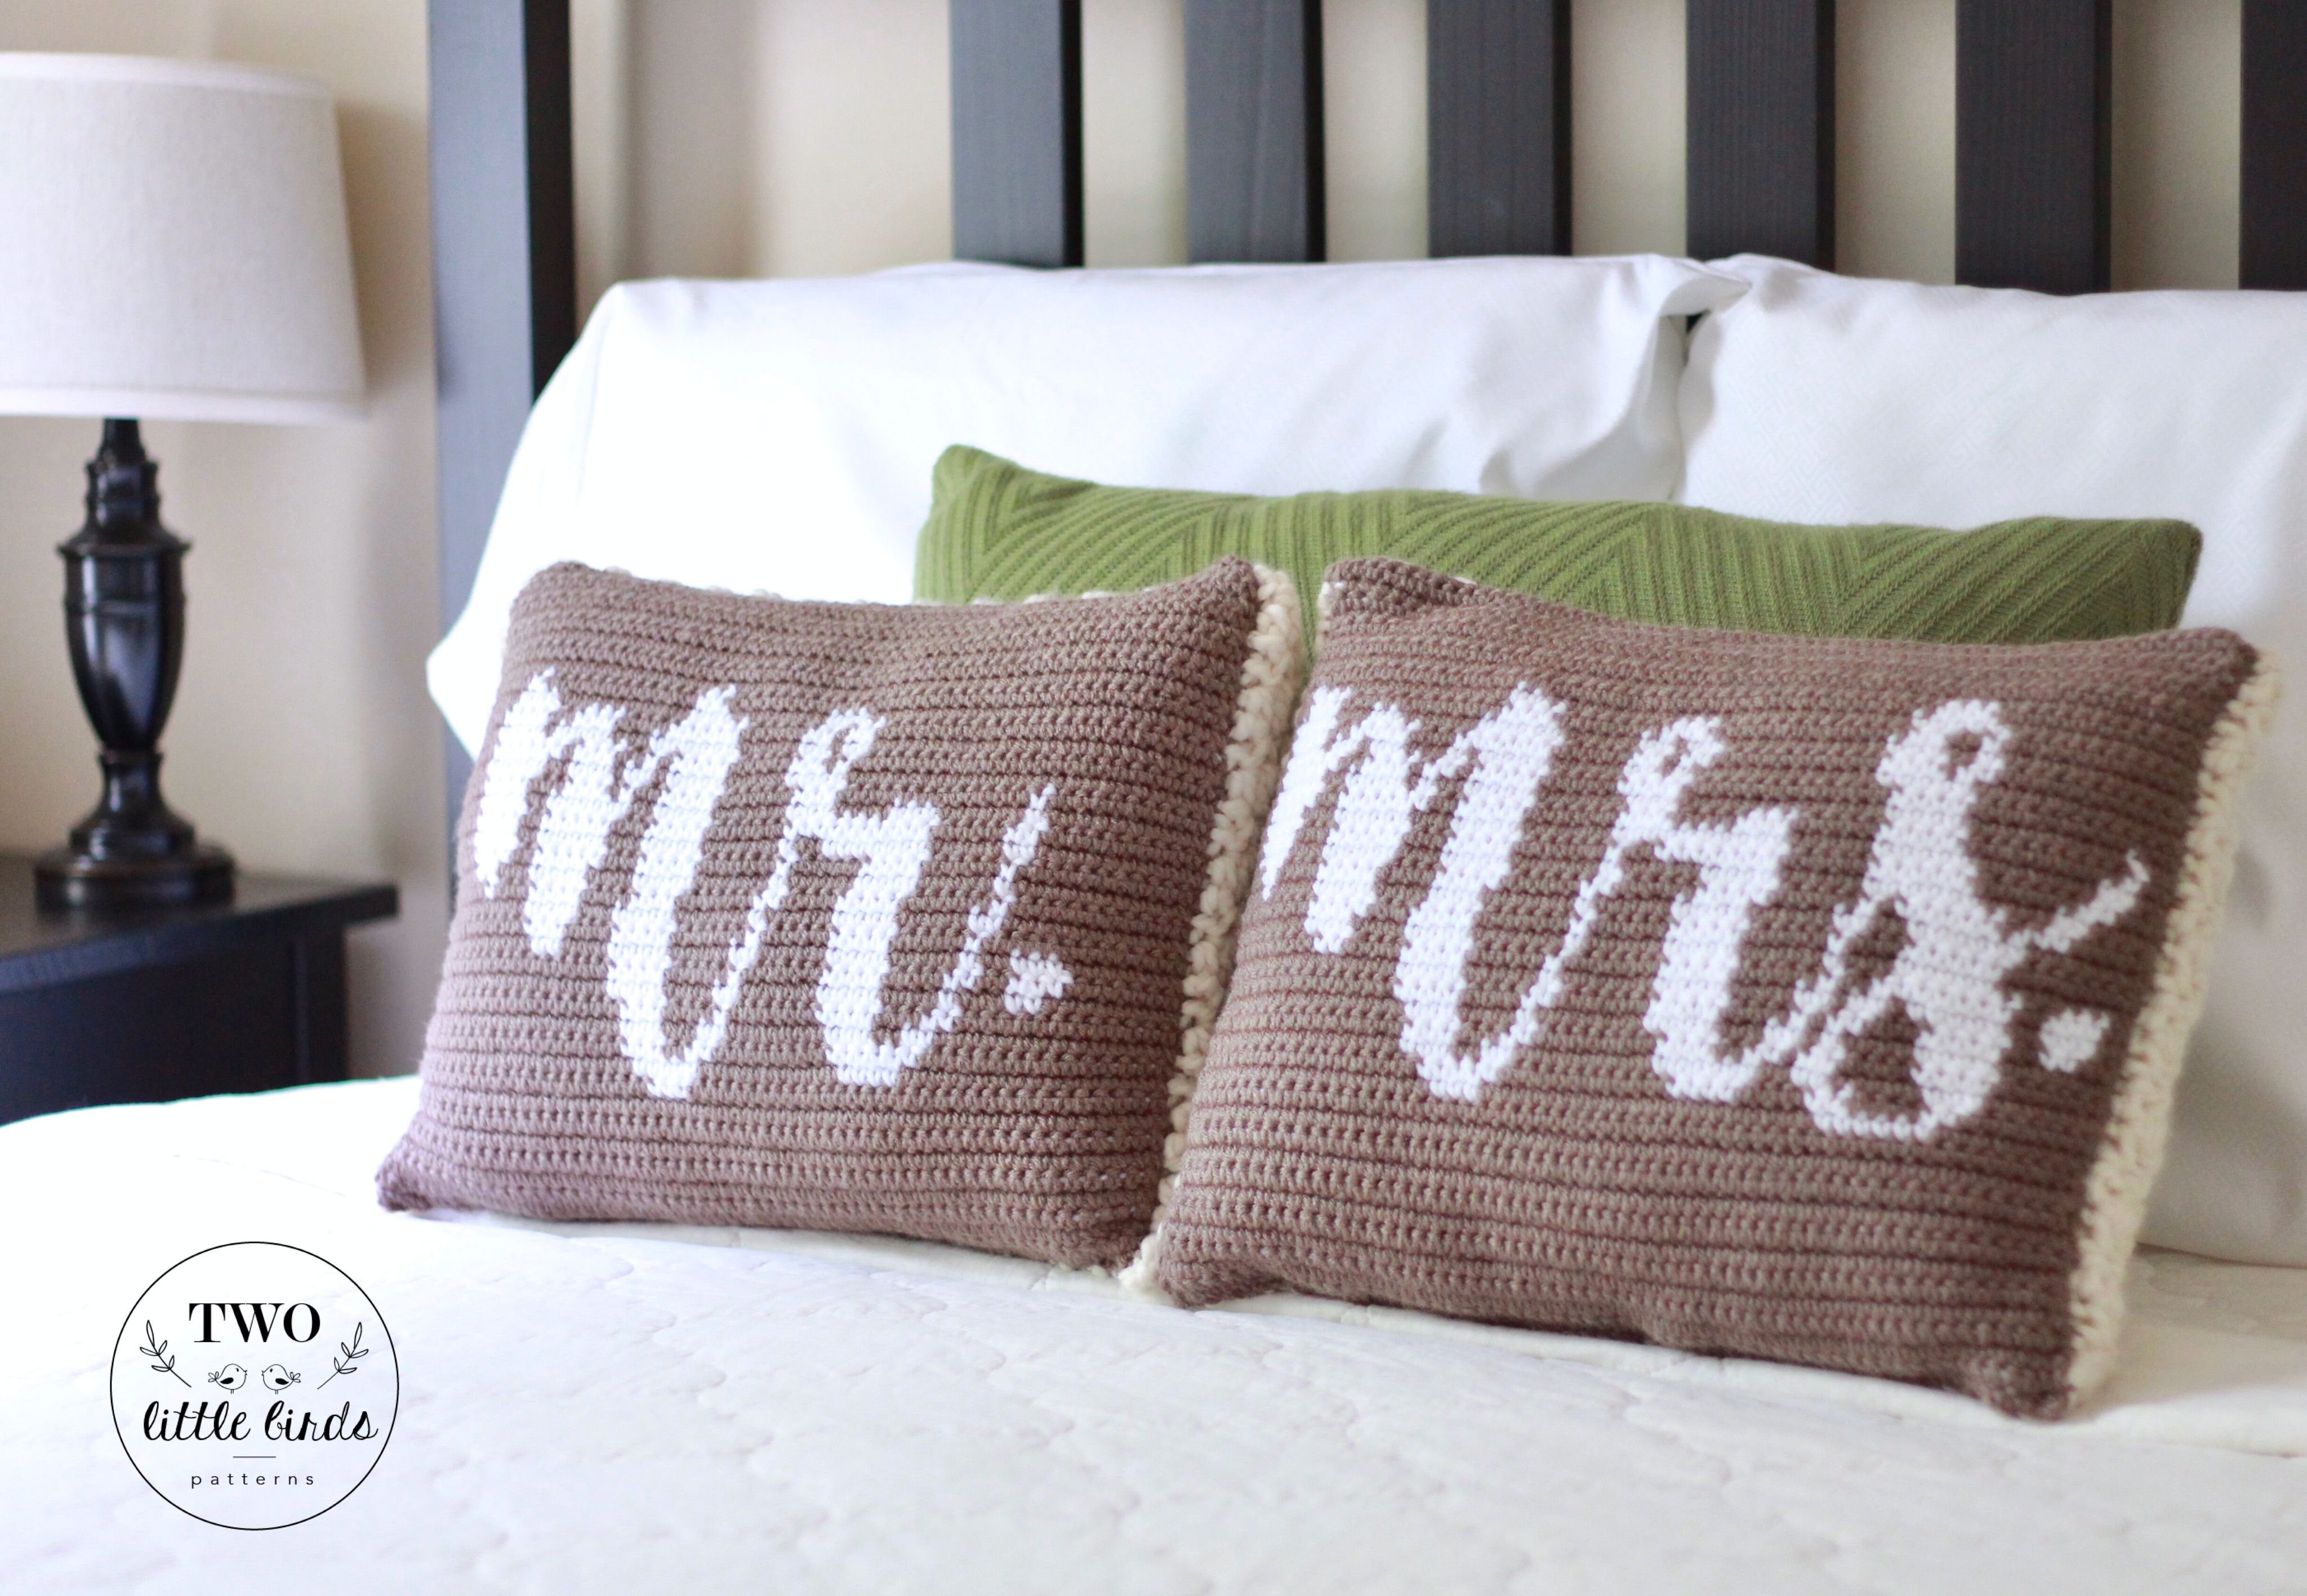 Crochet pattern crochet pillow pattern crochet throw pillow gift crochet pattern crochet pillow pattern crochet throw pillow gift for couple wedding gift his and hers mr mrs pillow set dt1010fo